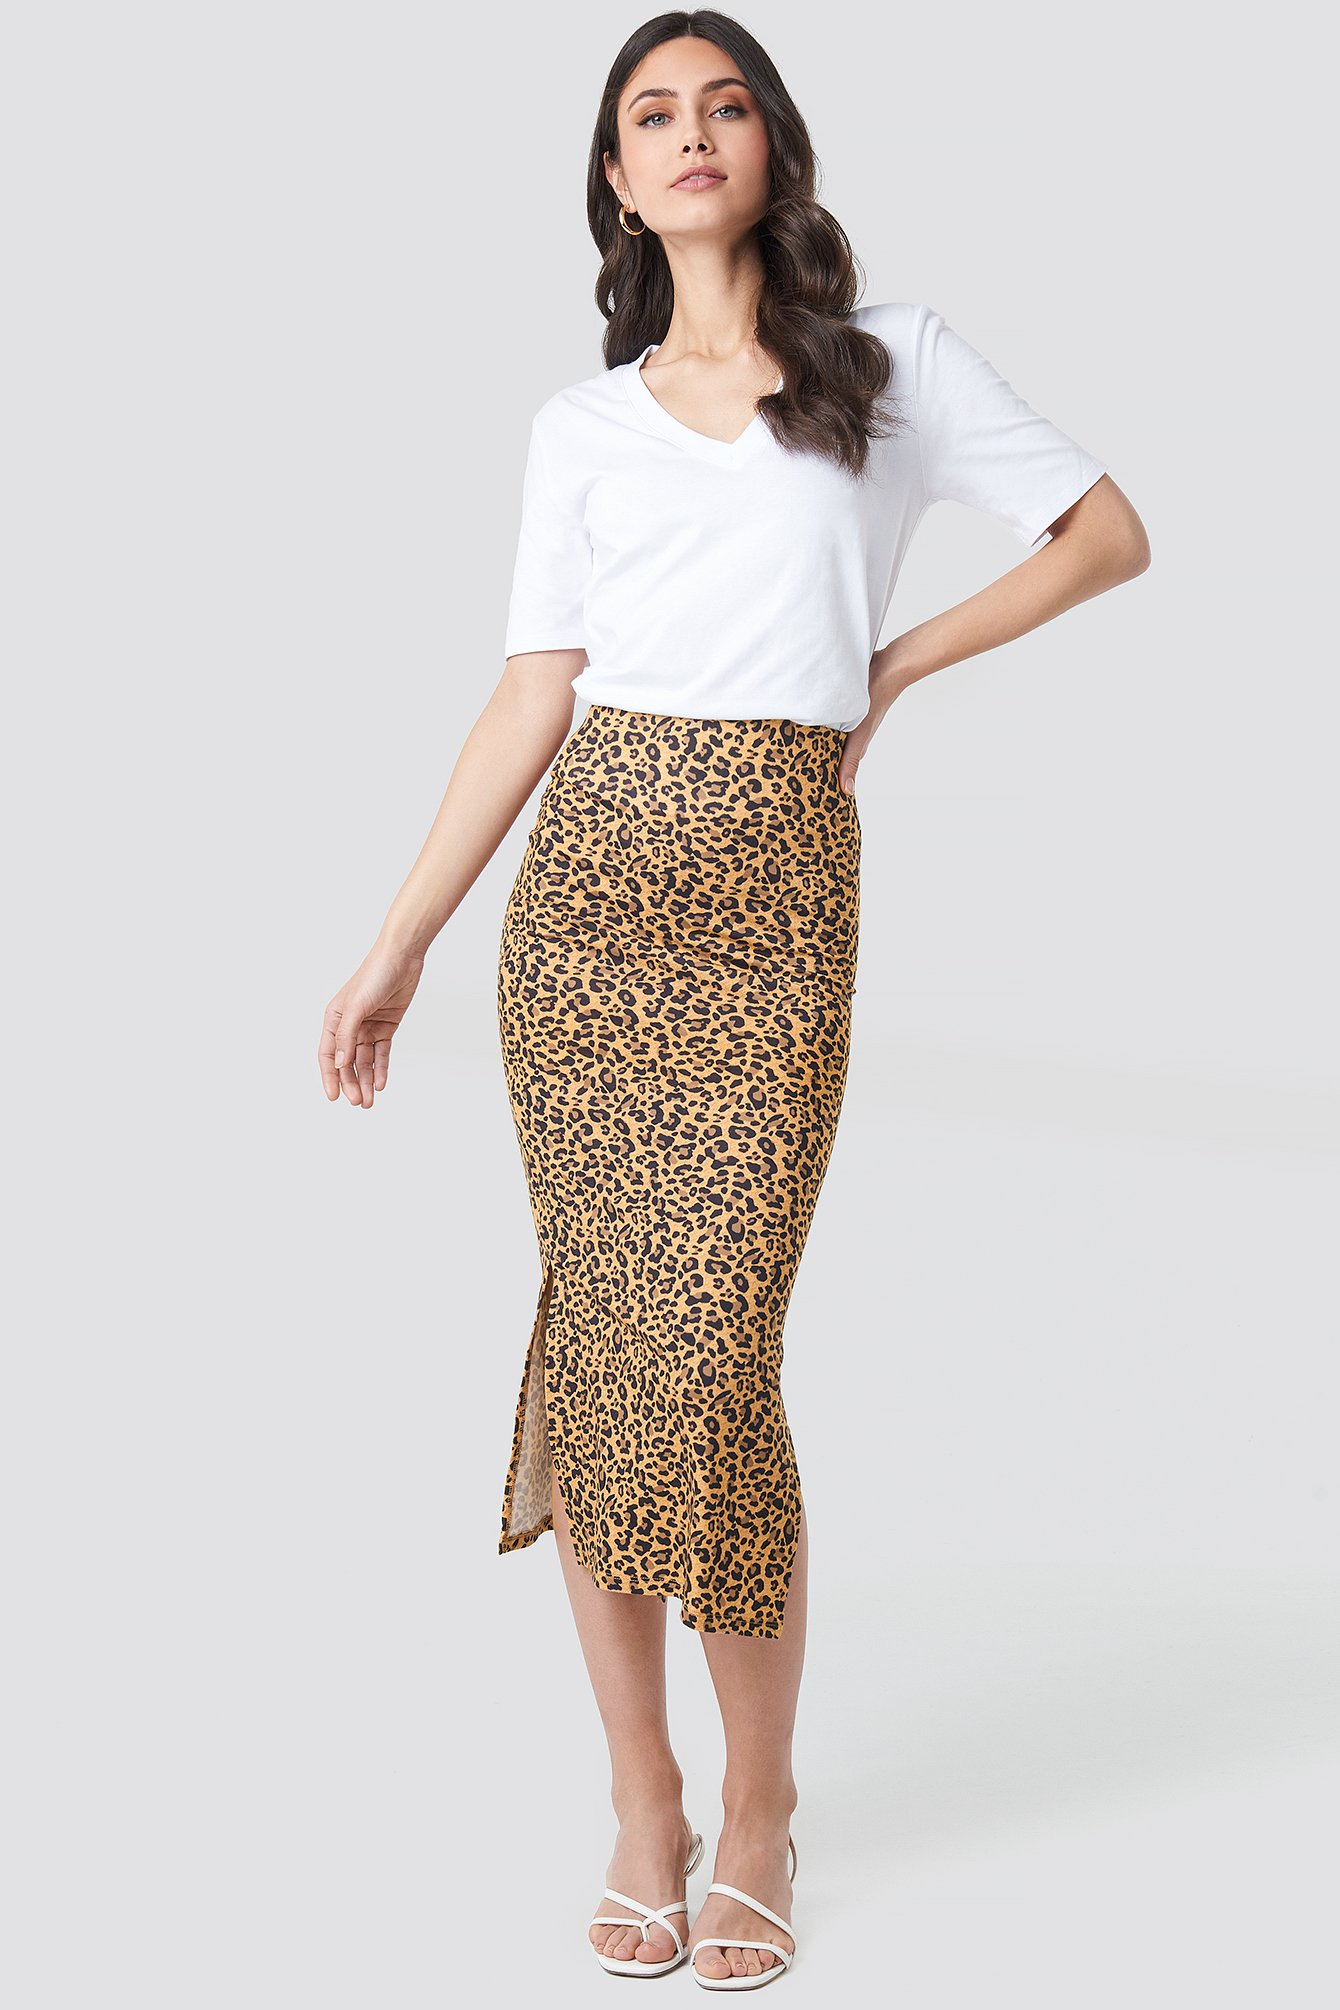 na-kd party -  Jesey Side Slit Leo Printed Skirt - Brown,Yellow